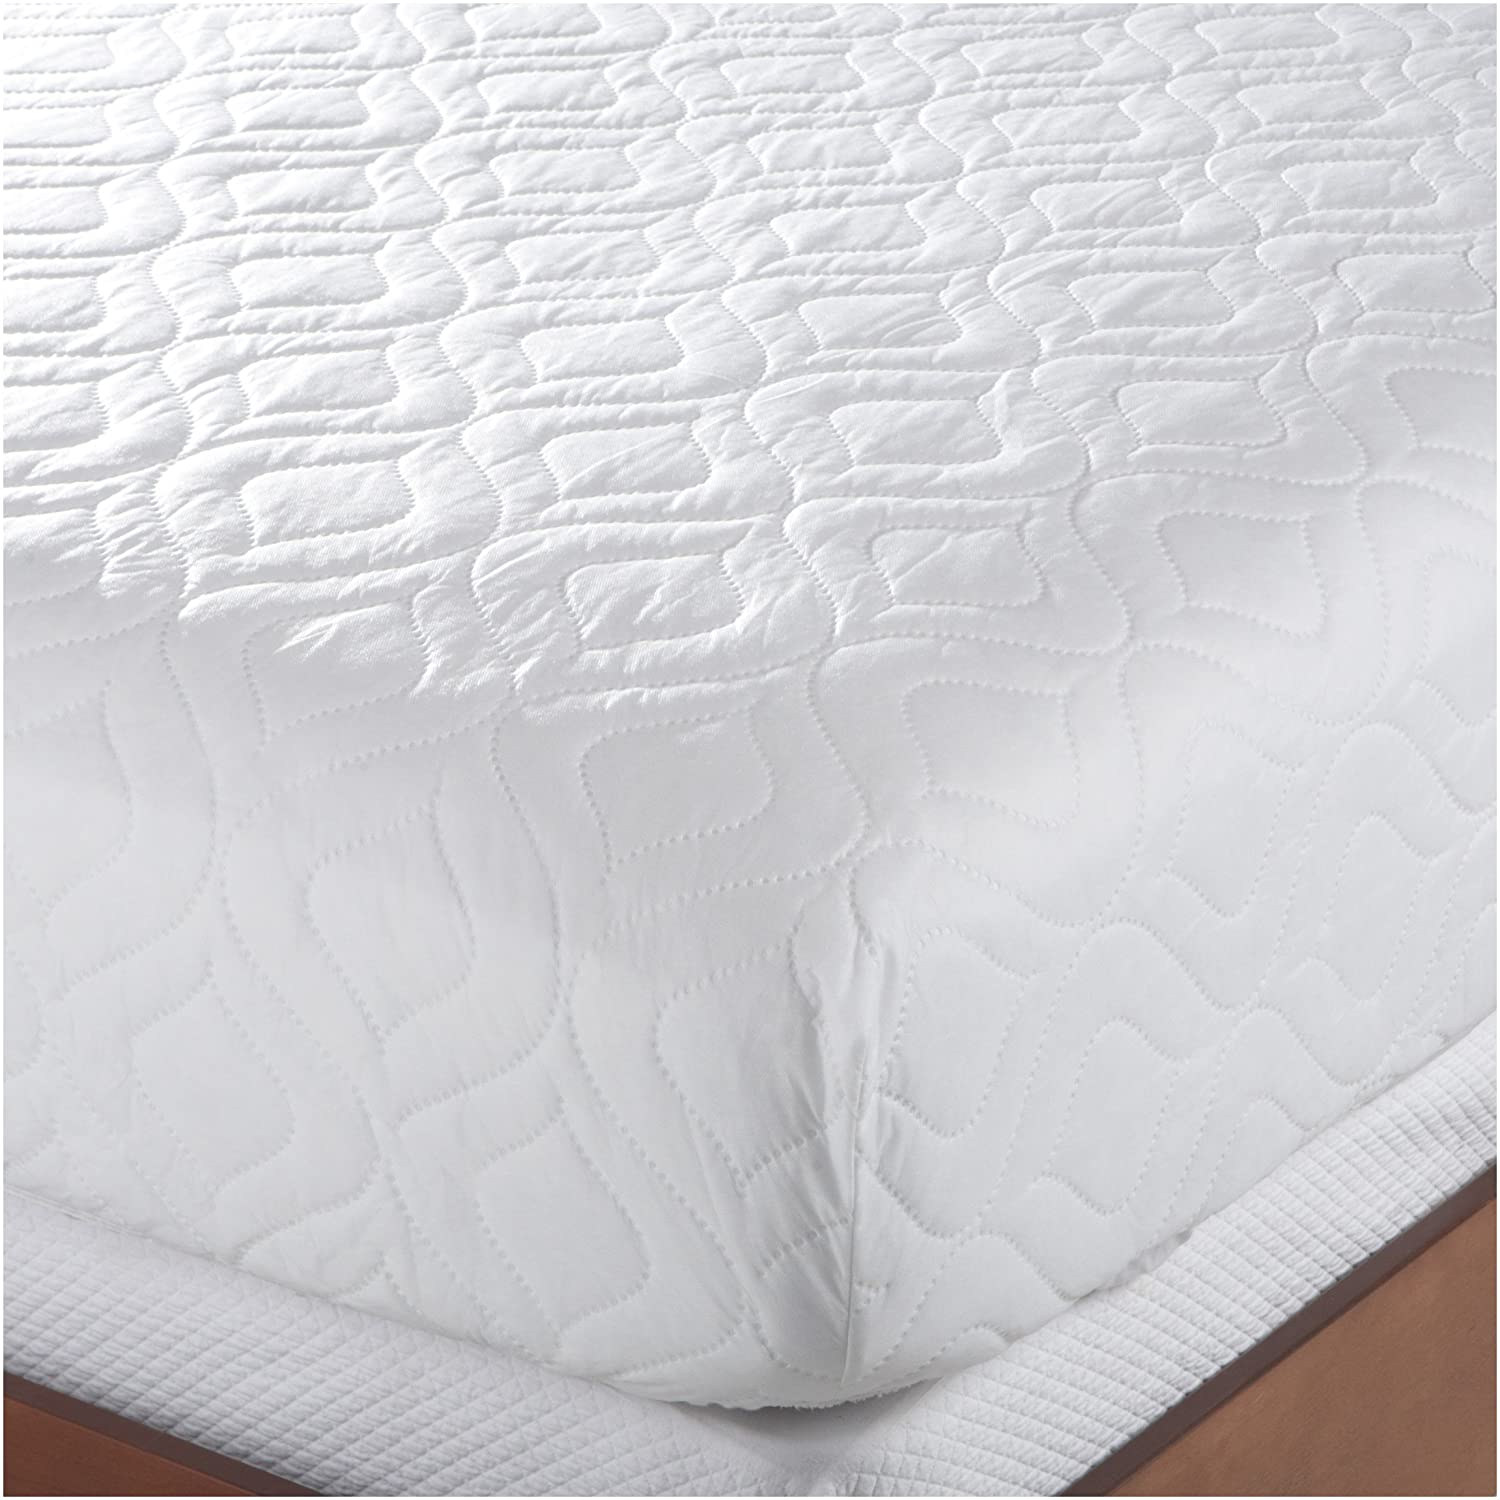 hotel topper cover top soft club water toppers level mattress hypoallergenic resistant quality down duck tags white luxury thic stunning superior pillow deservingness id charter premium tag good exotic and pads comfort extra stain stylish